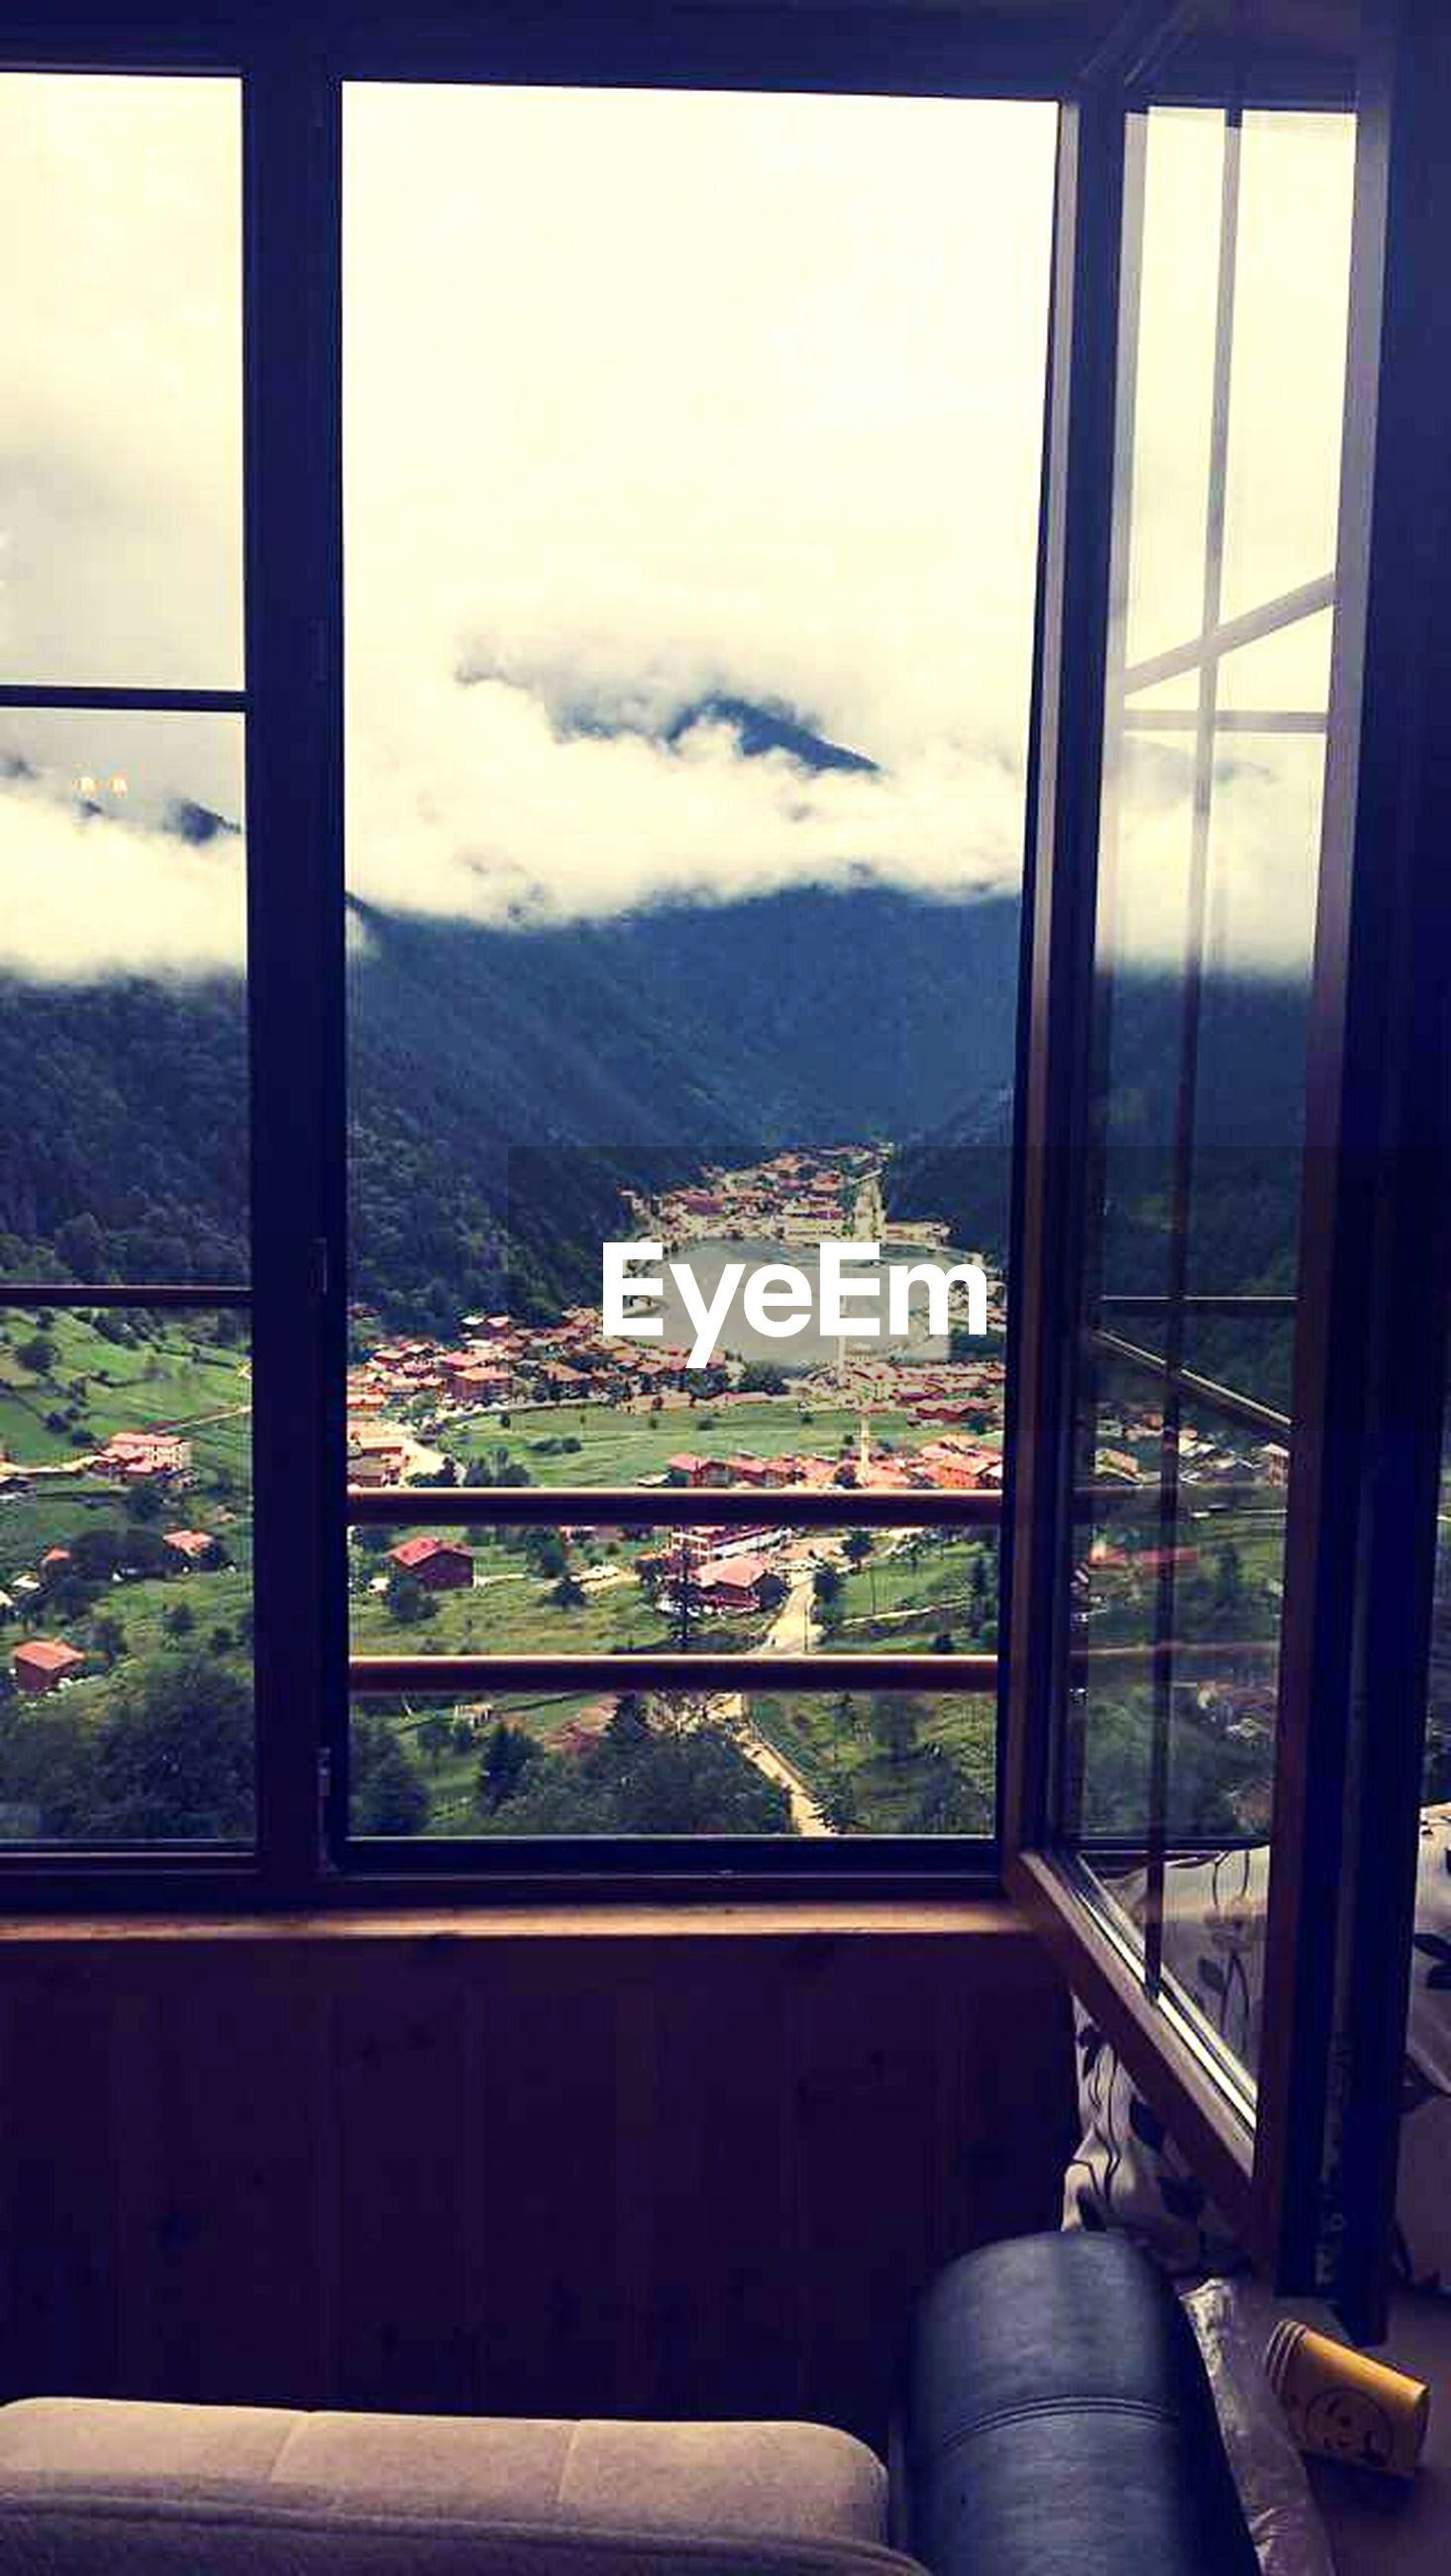 window, no people, indoors, day, mountain, architecture, built structure, sky, landscape, cityscape, nature, building exterior